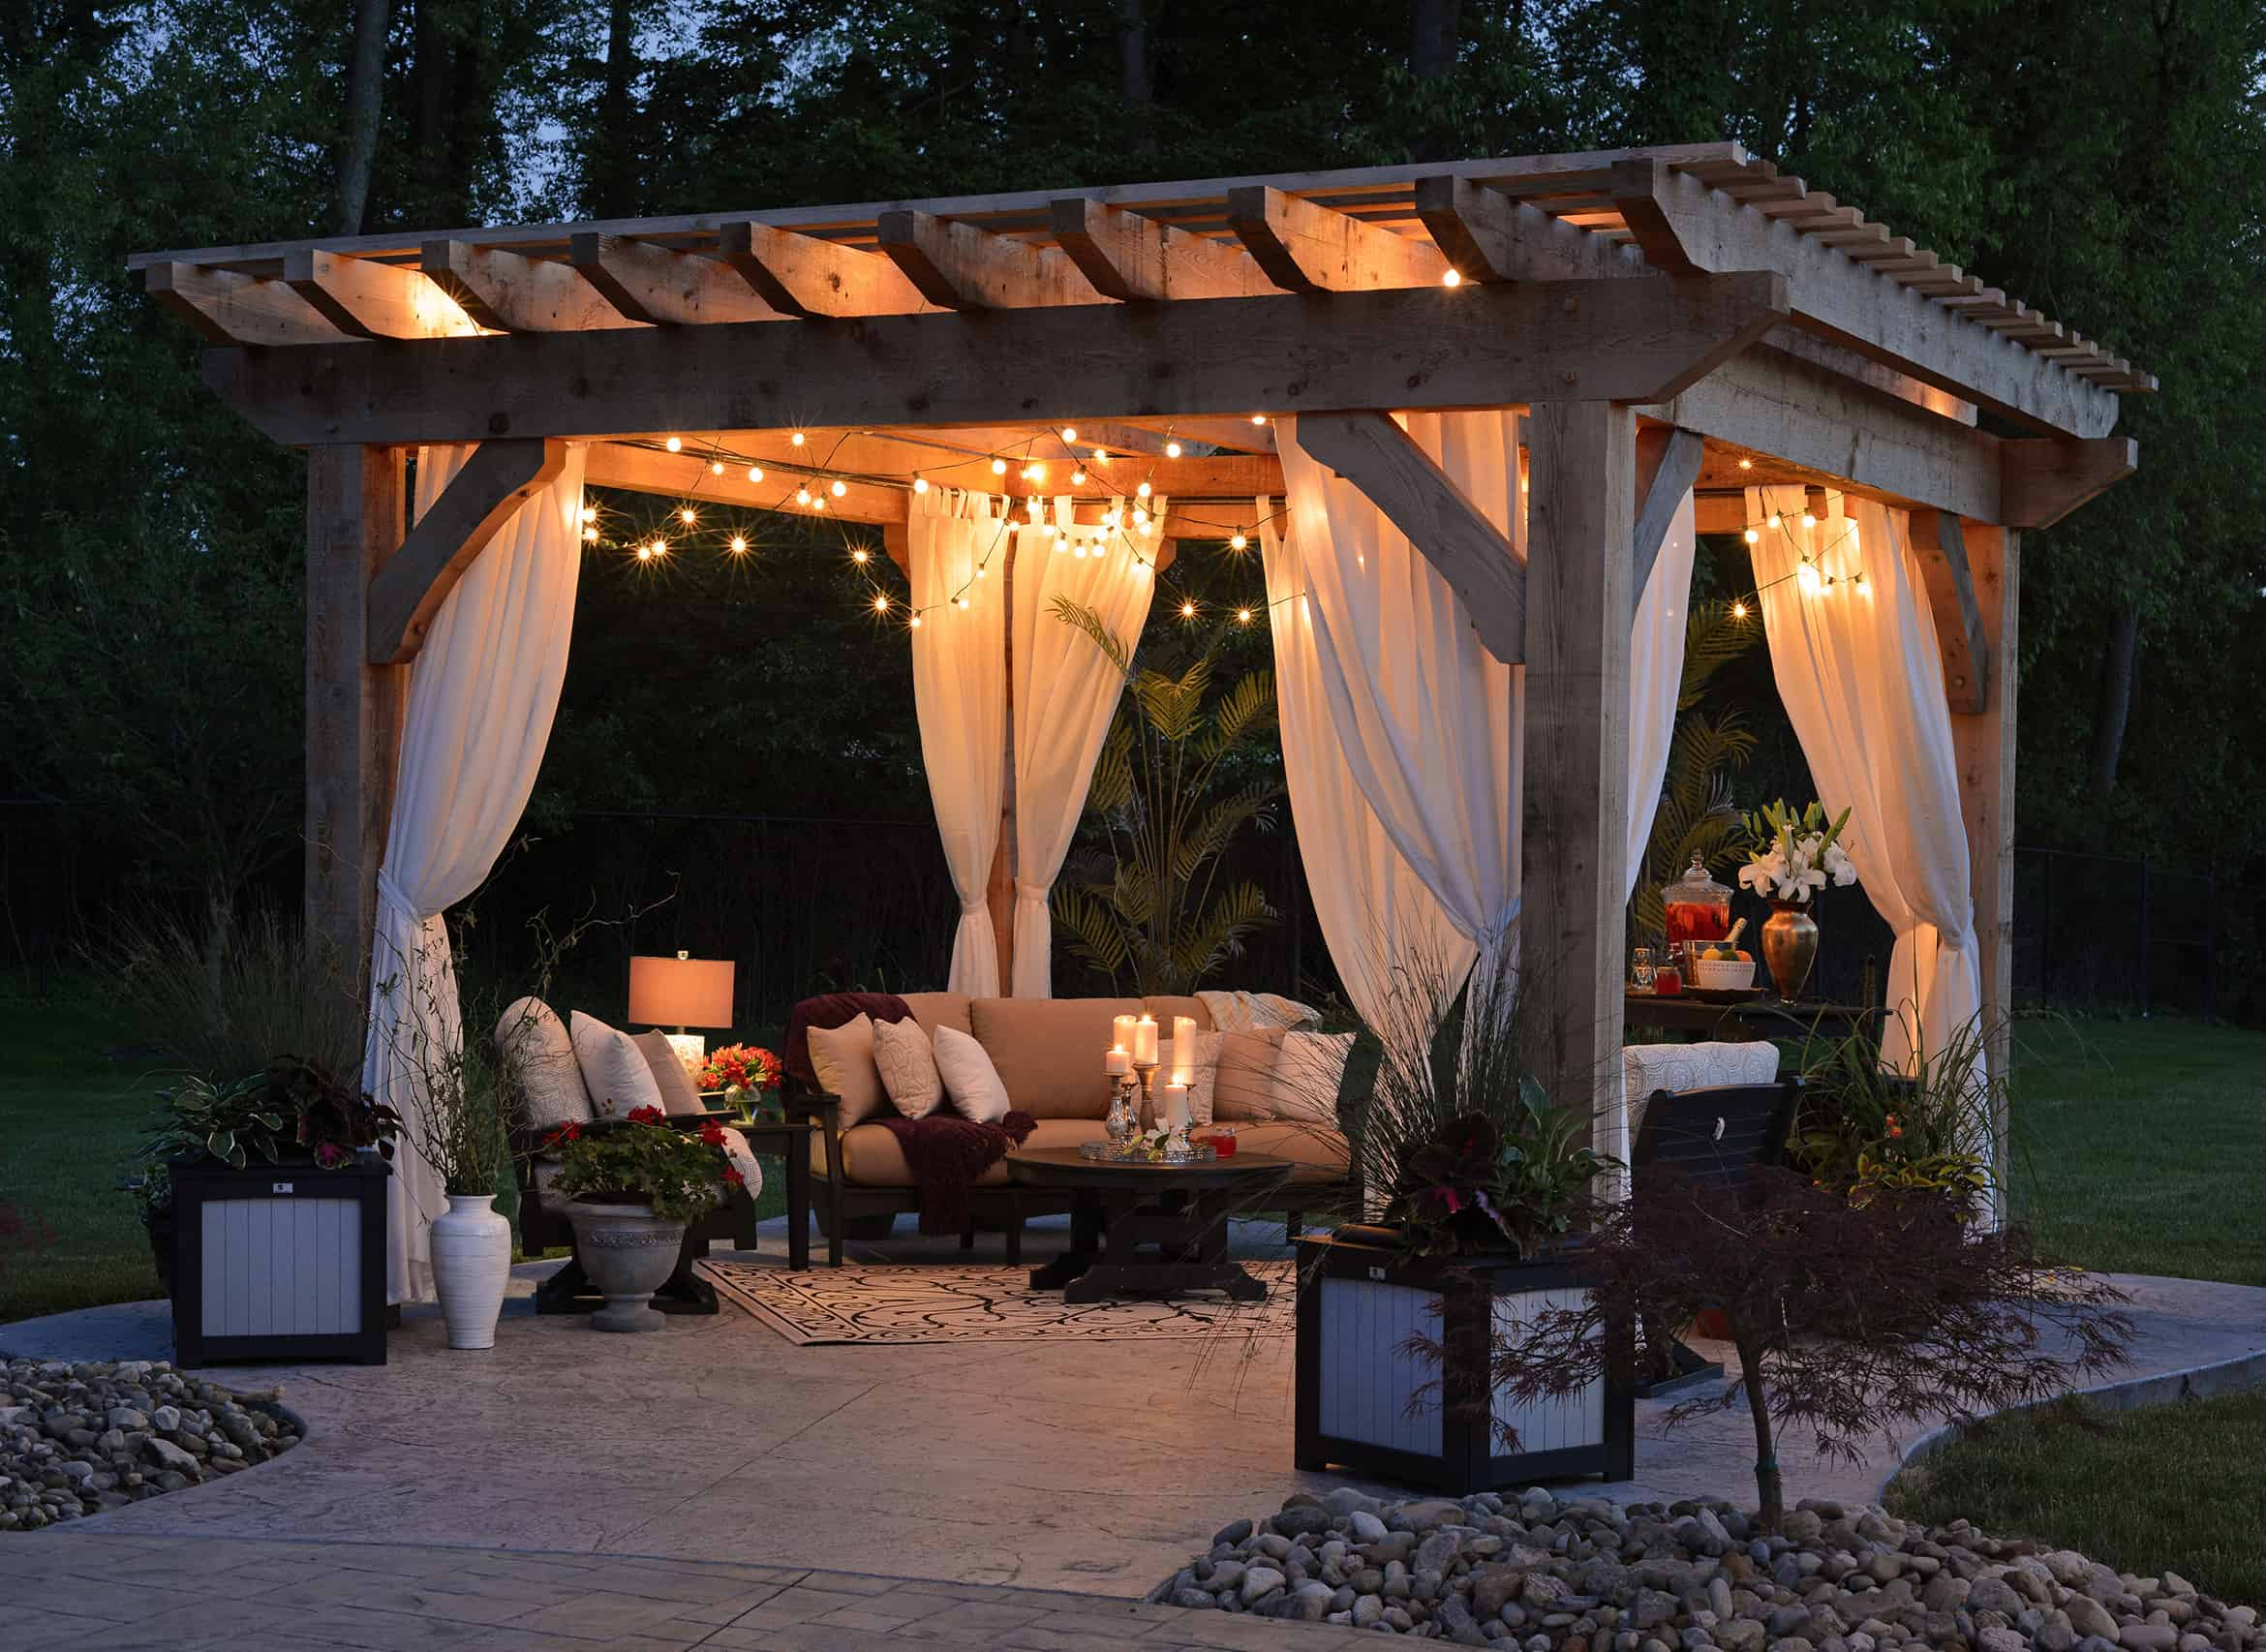 Best-Patio-Deck-Propane-Fire-Pits-For-Cozy-Evenings-2020-cozy-minds